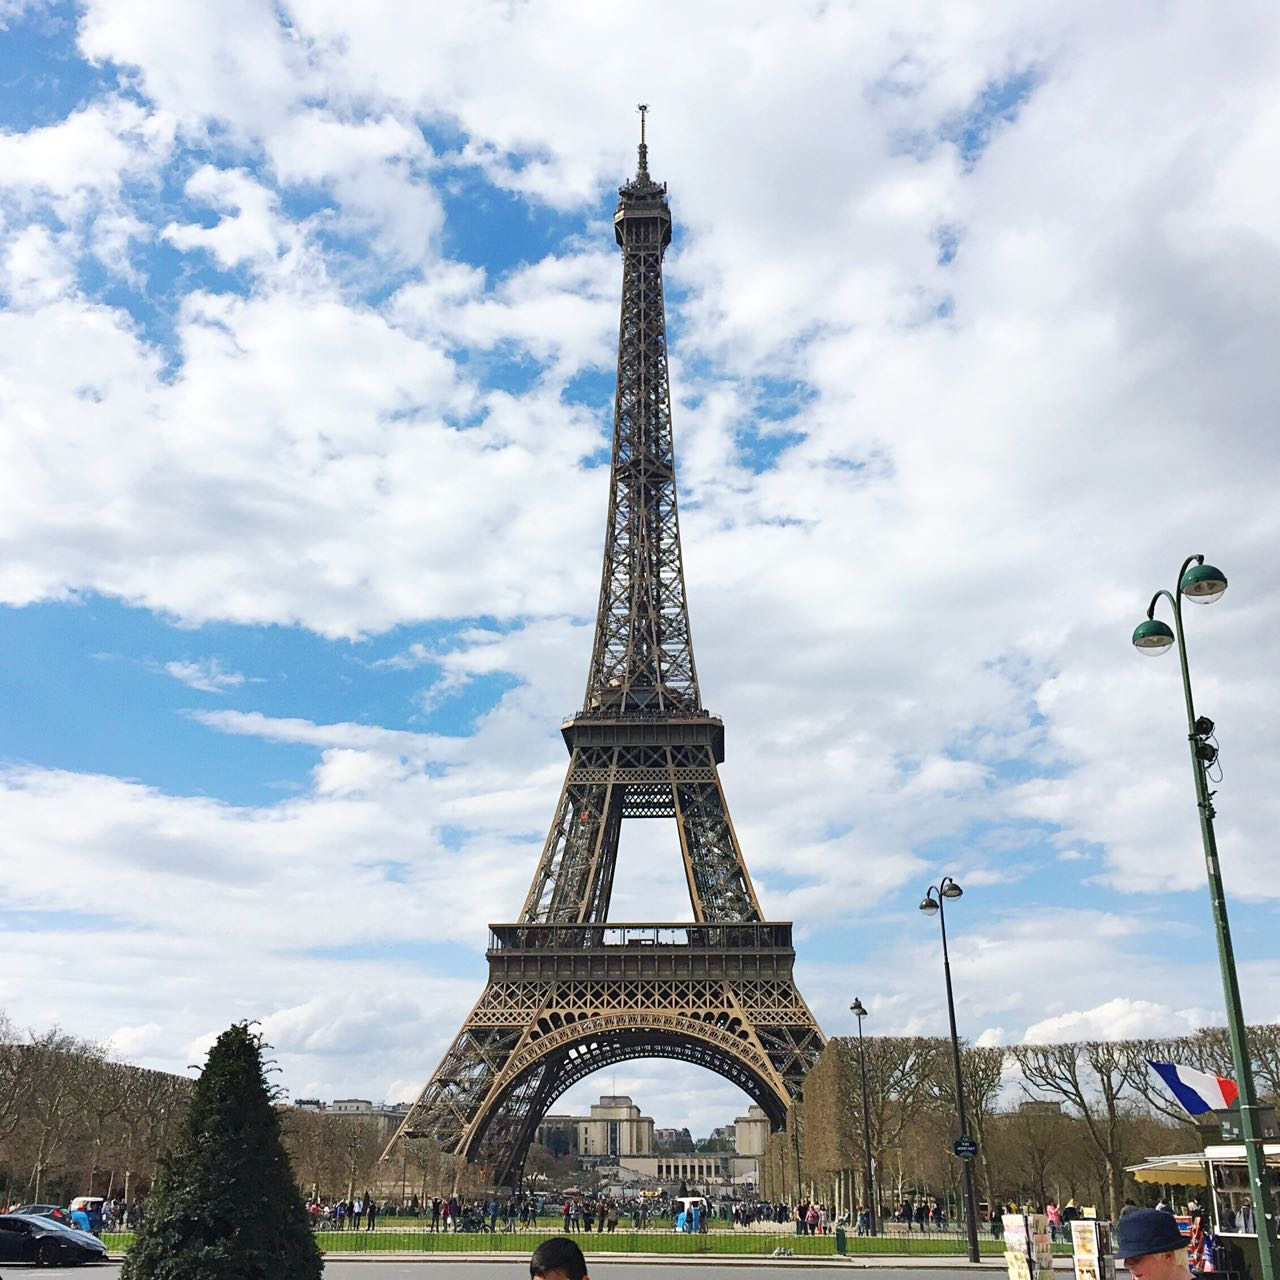 The Eiffel Tower (of course!) - sans scaffolding for the first time for me....